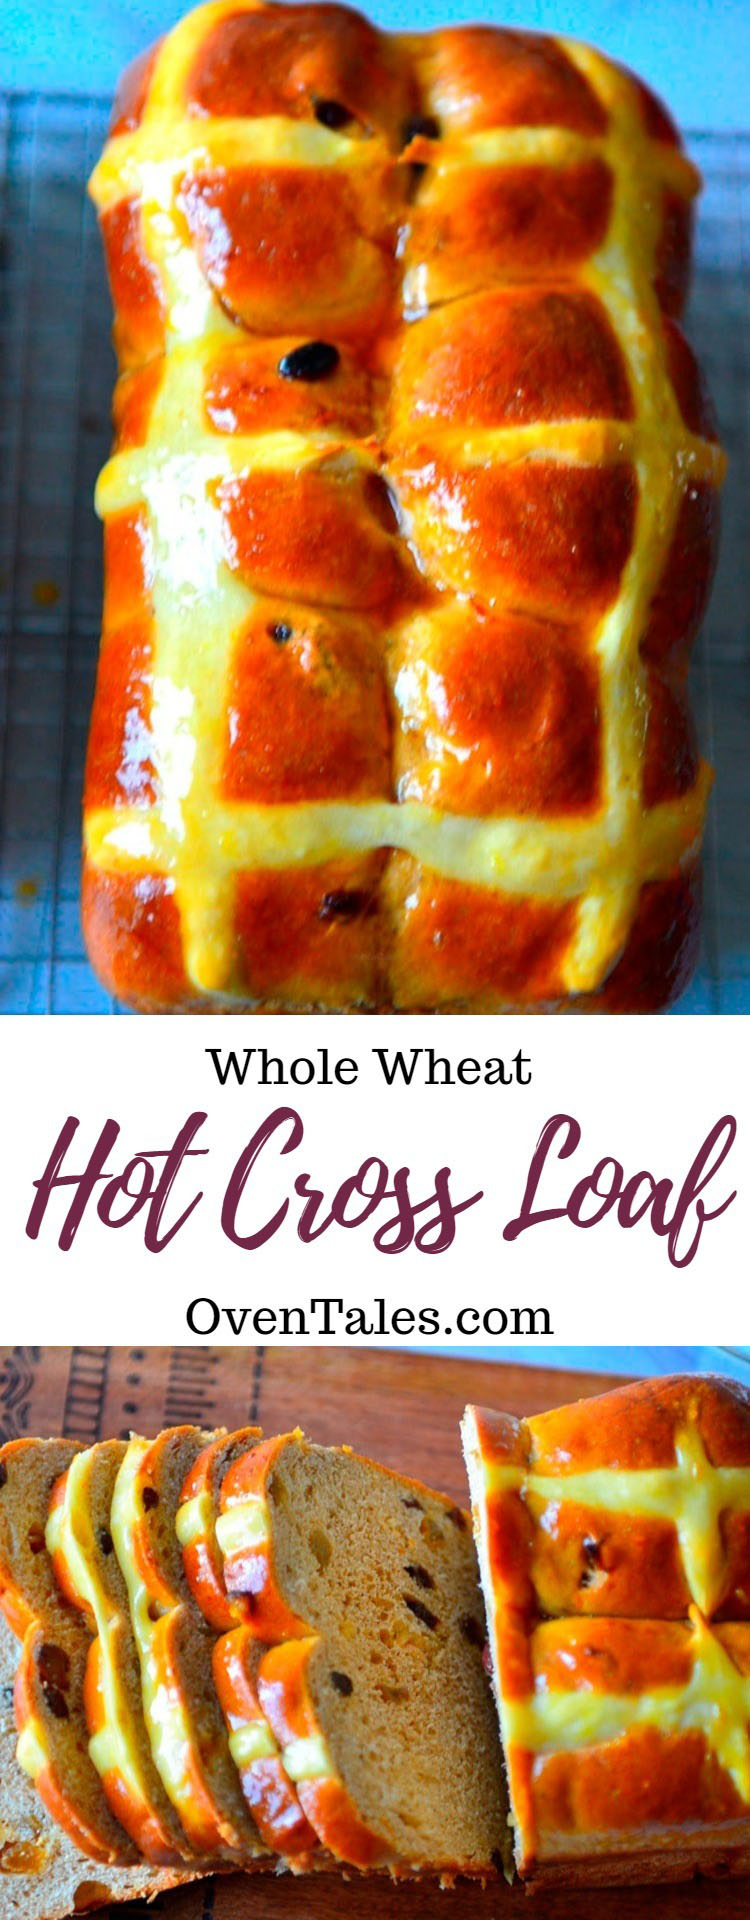 Whole Wheat Hot Cross Bun Loaf